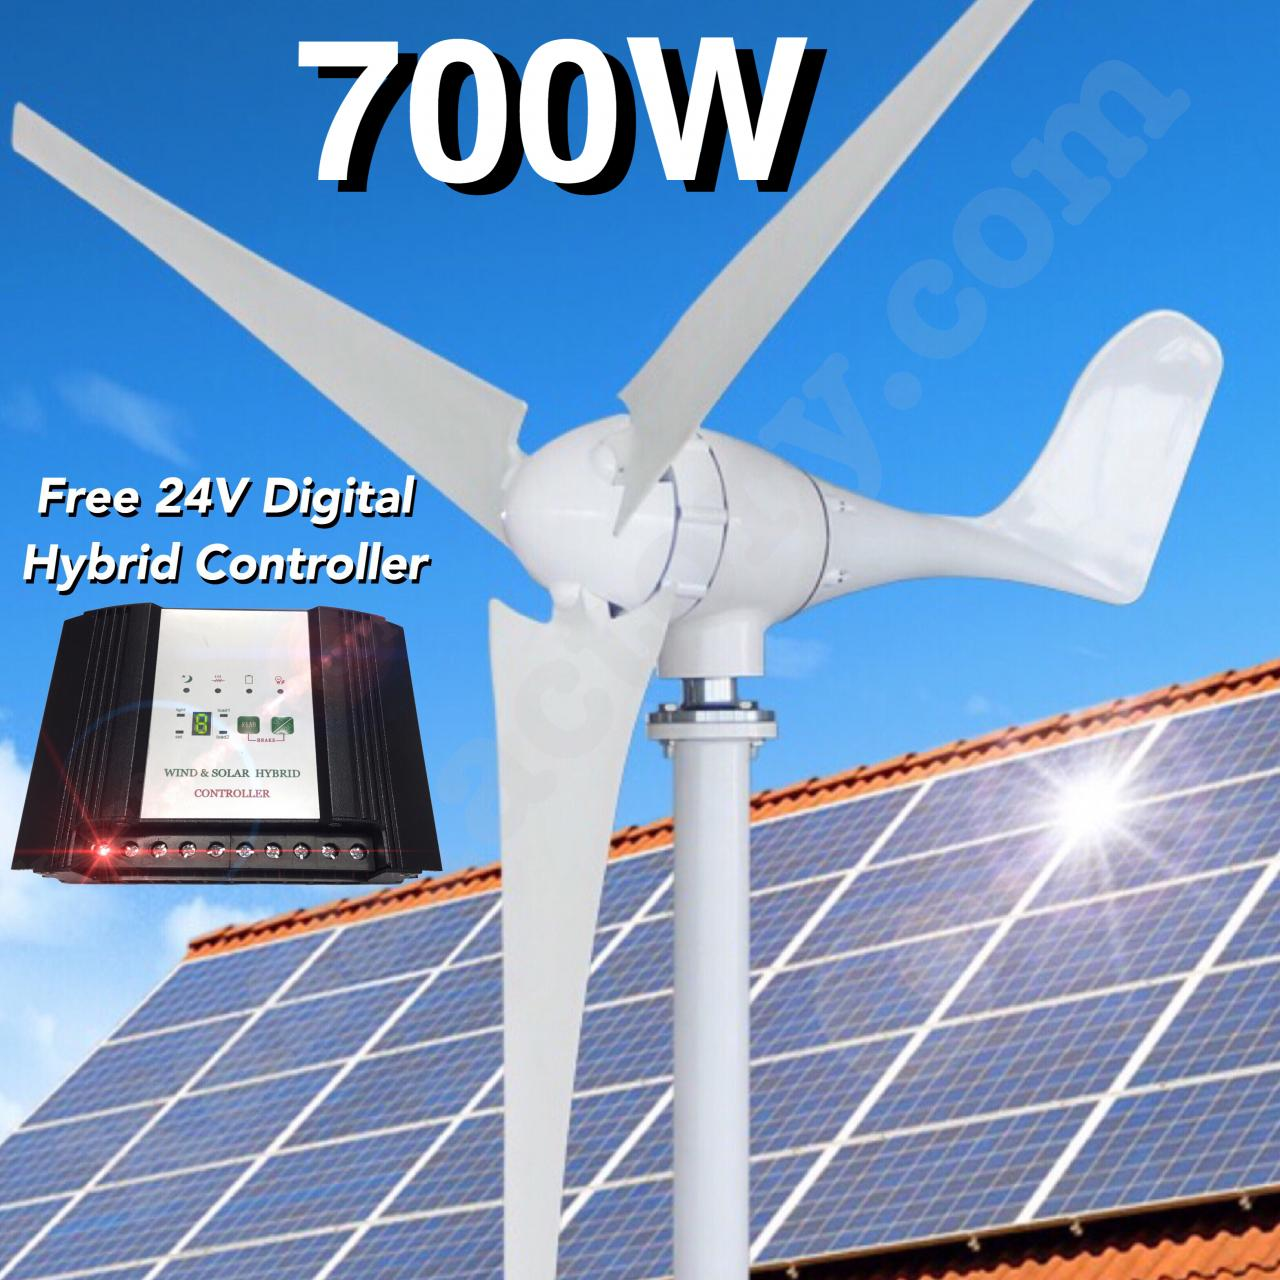 700w 24v Wind Turbine Generator 3 Blade Digital Hybrid Solar Circuit Diagram Also Home Theater Wiring Further